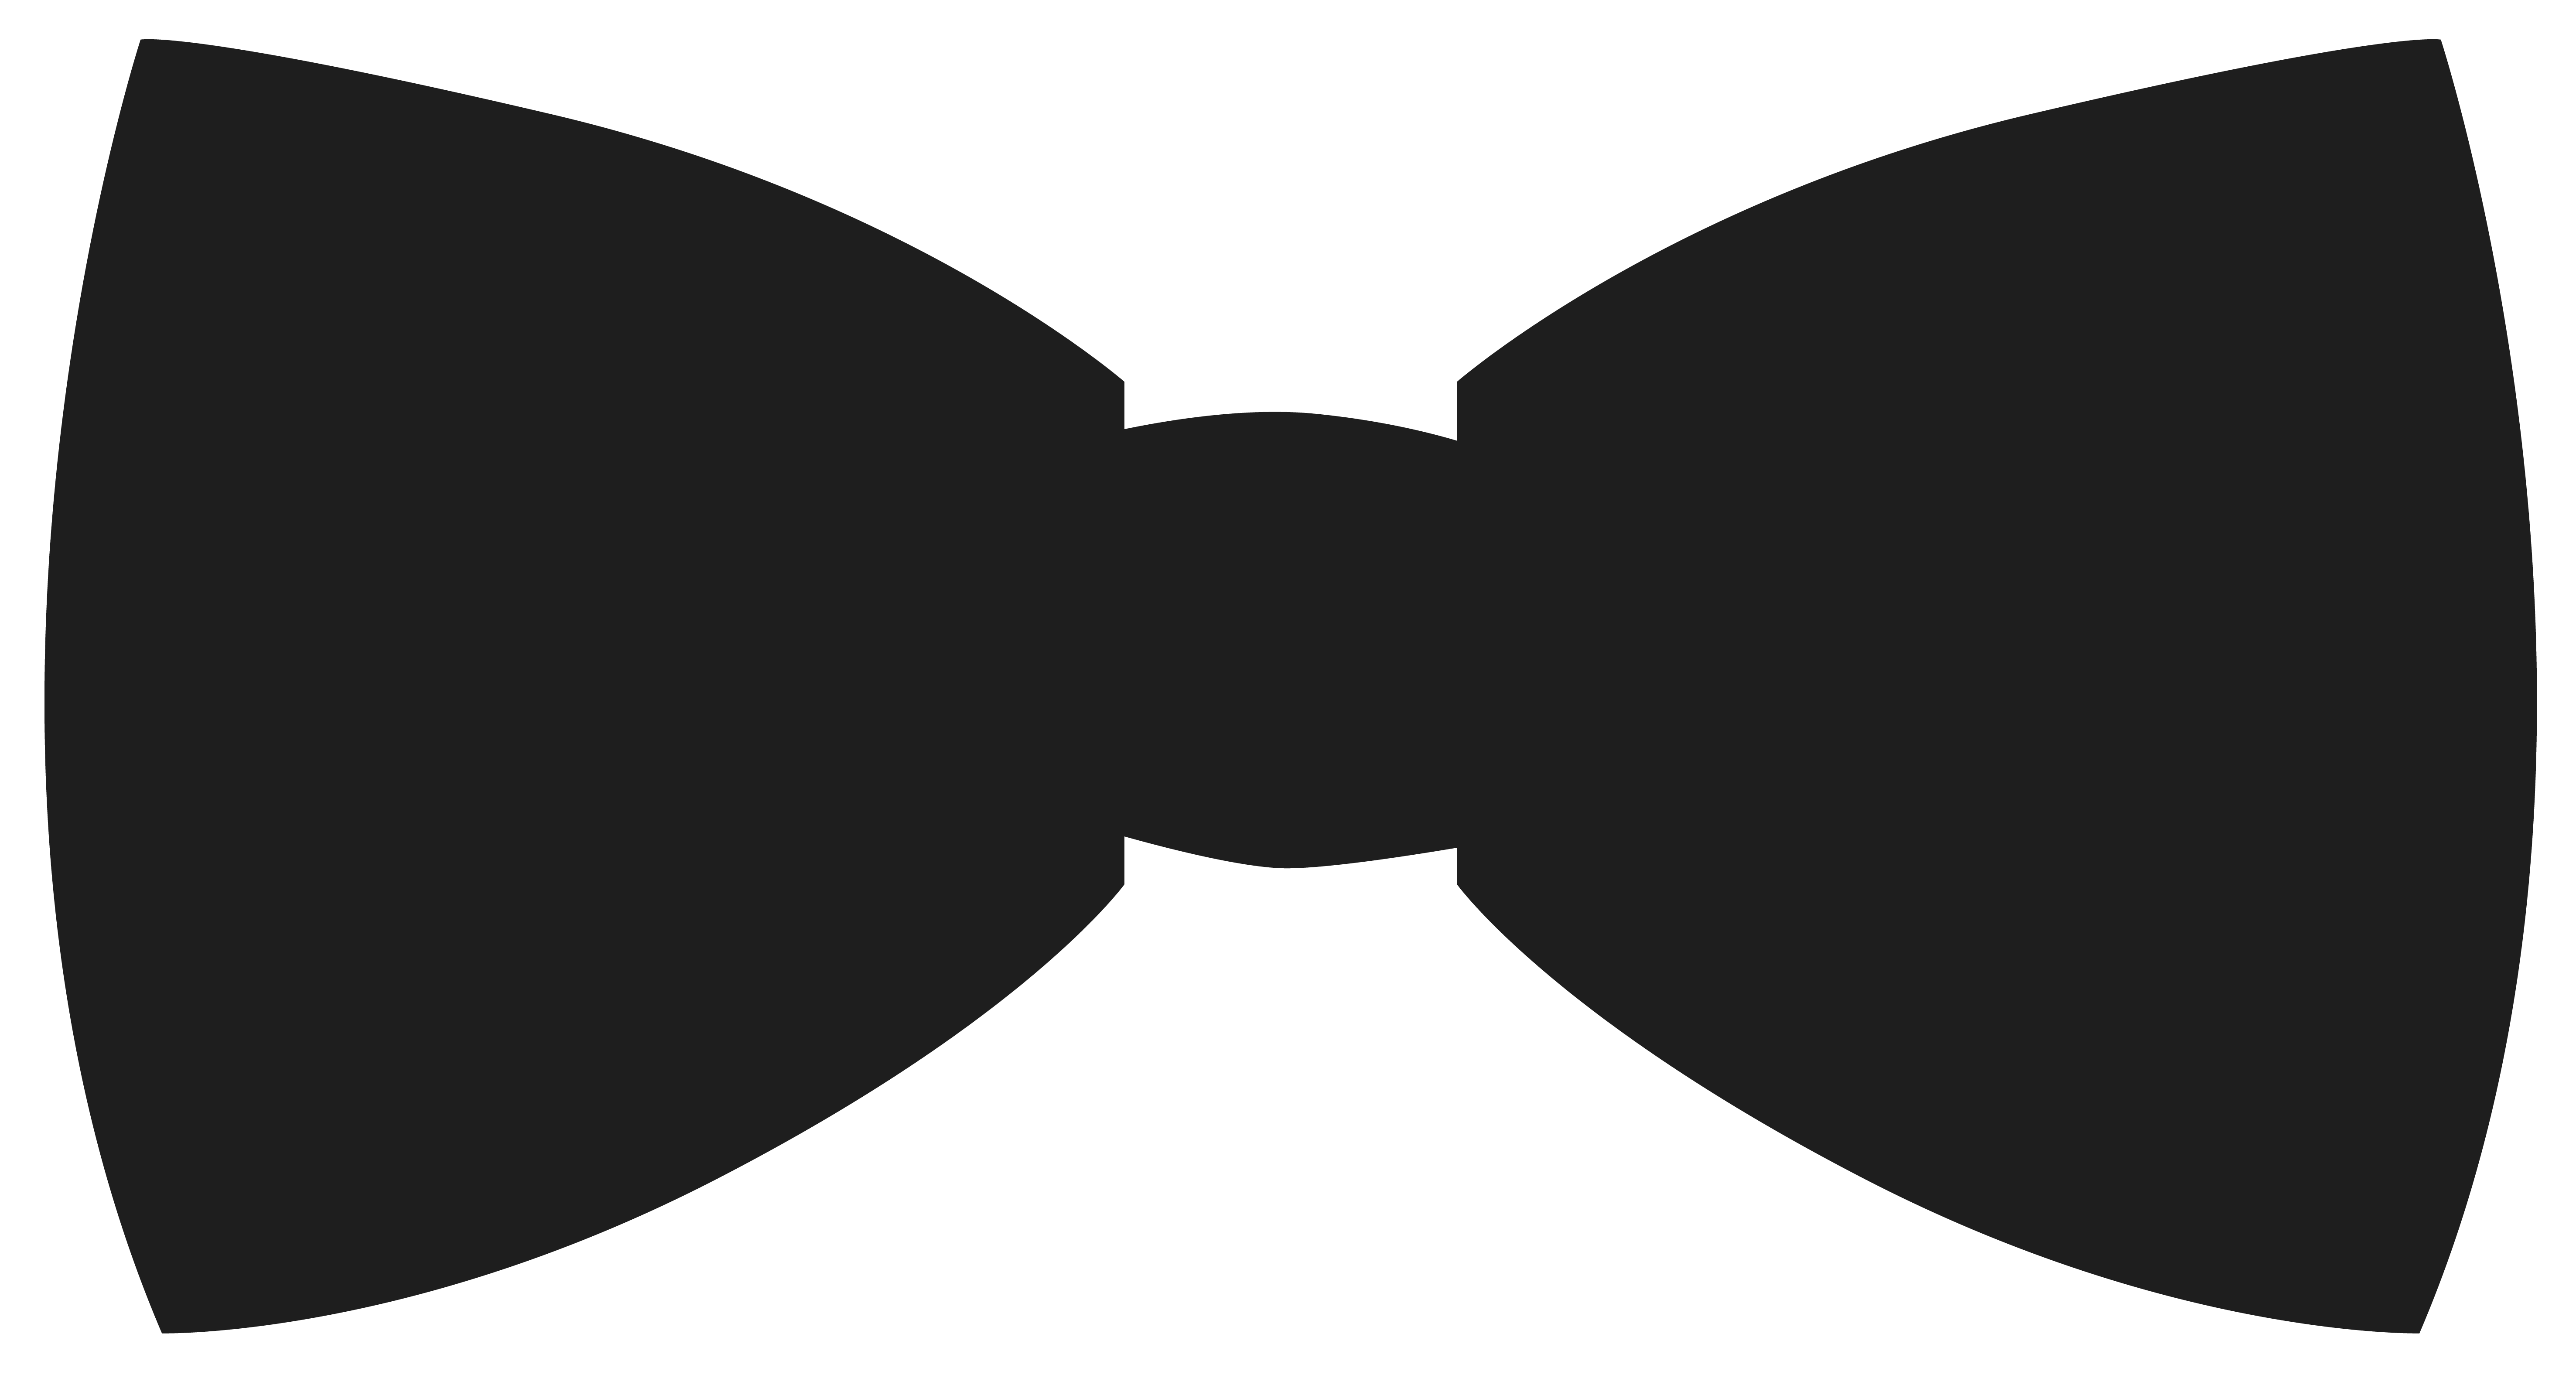 Bow Tie Clipart For Download Free.